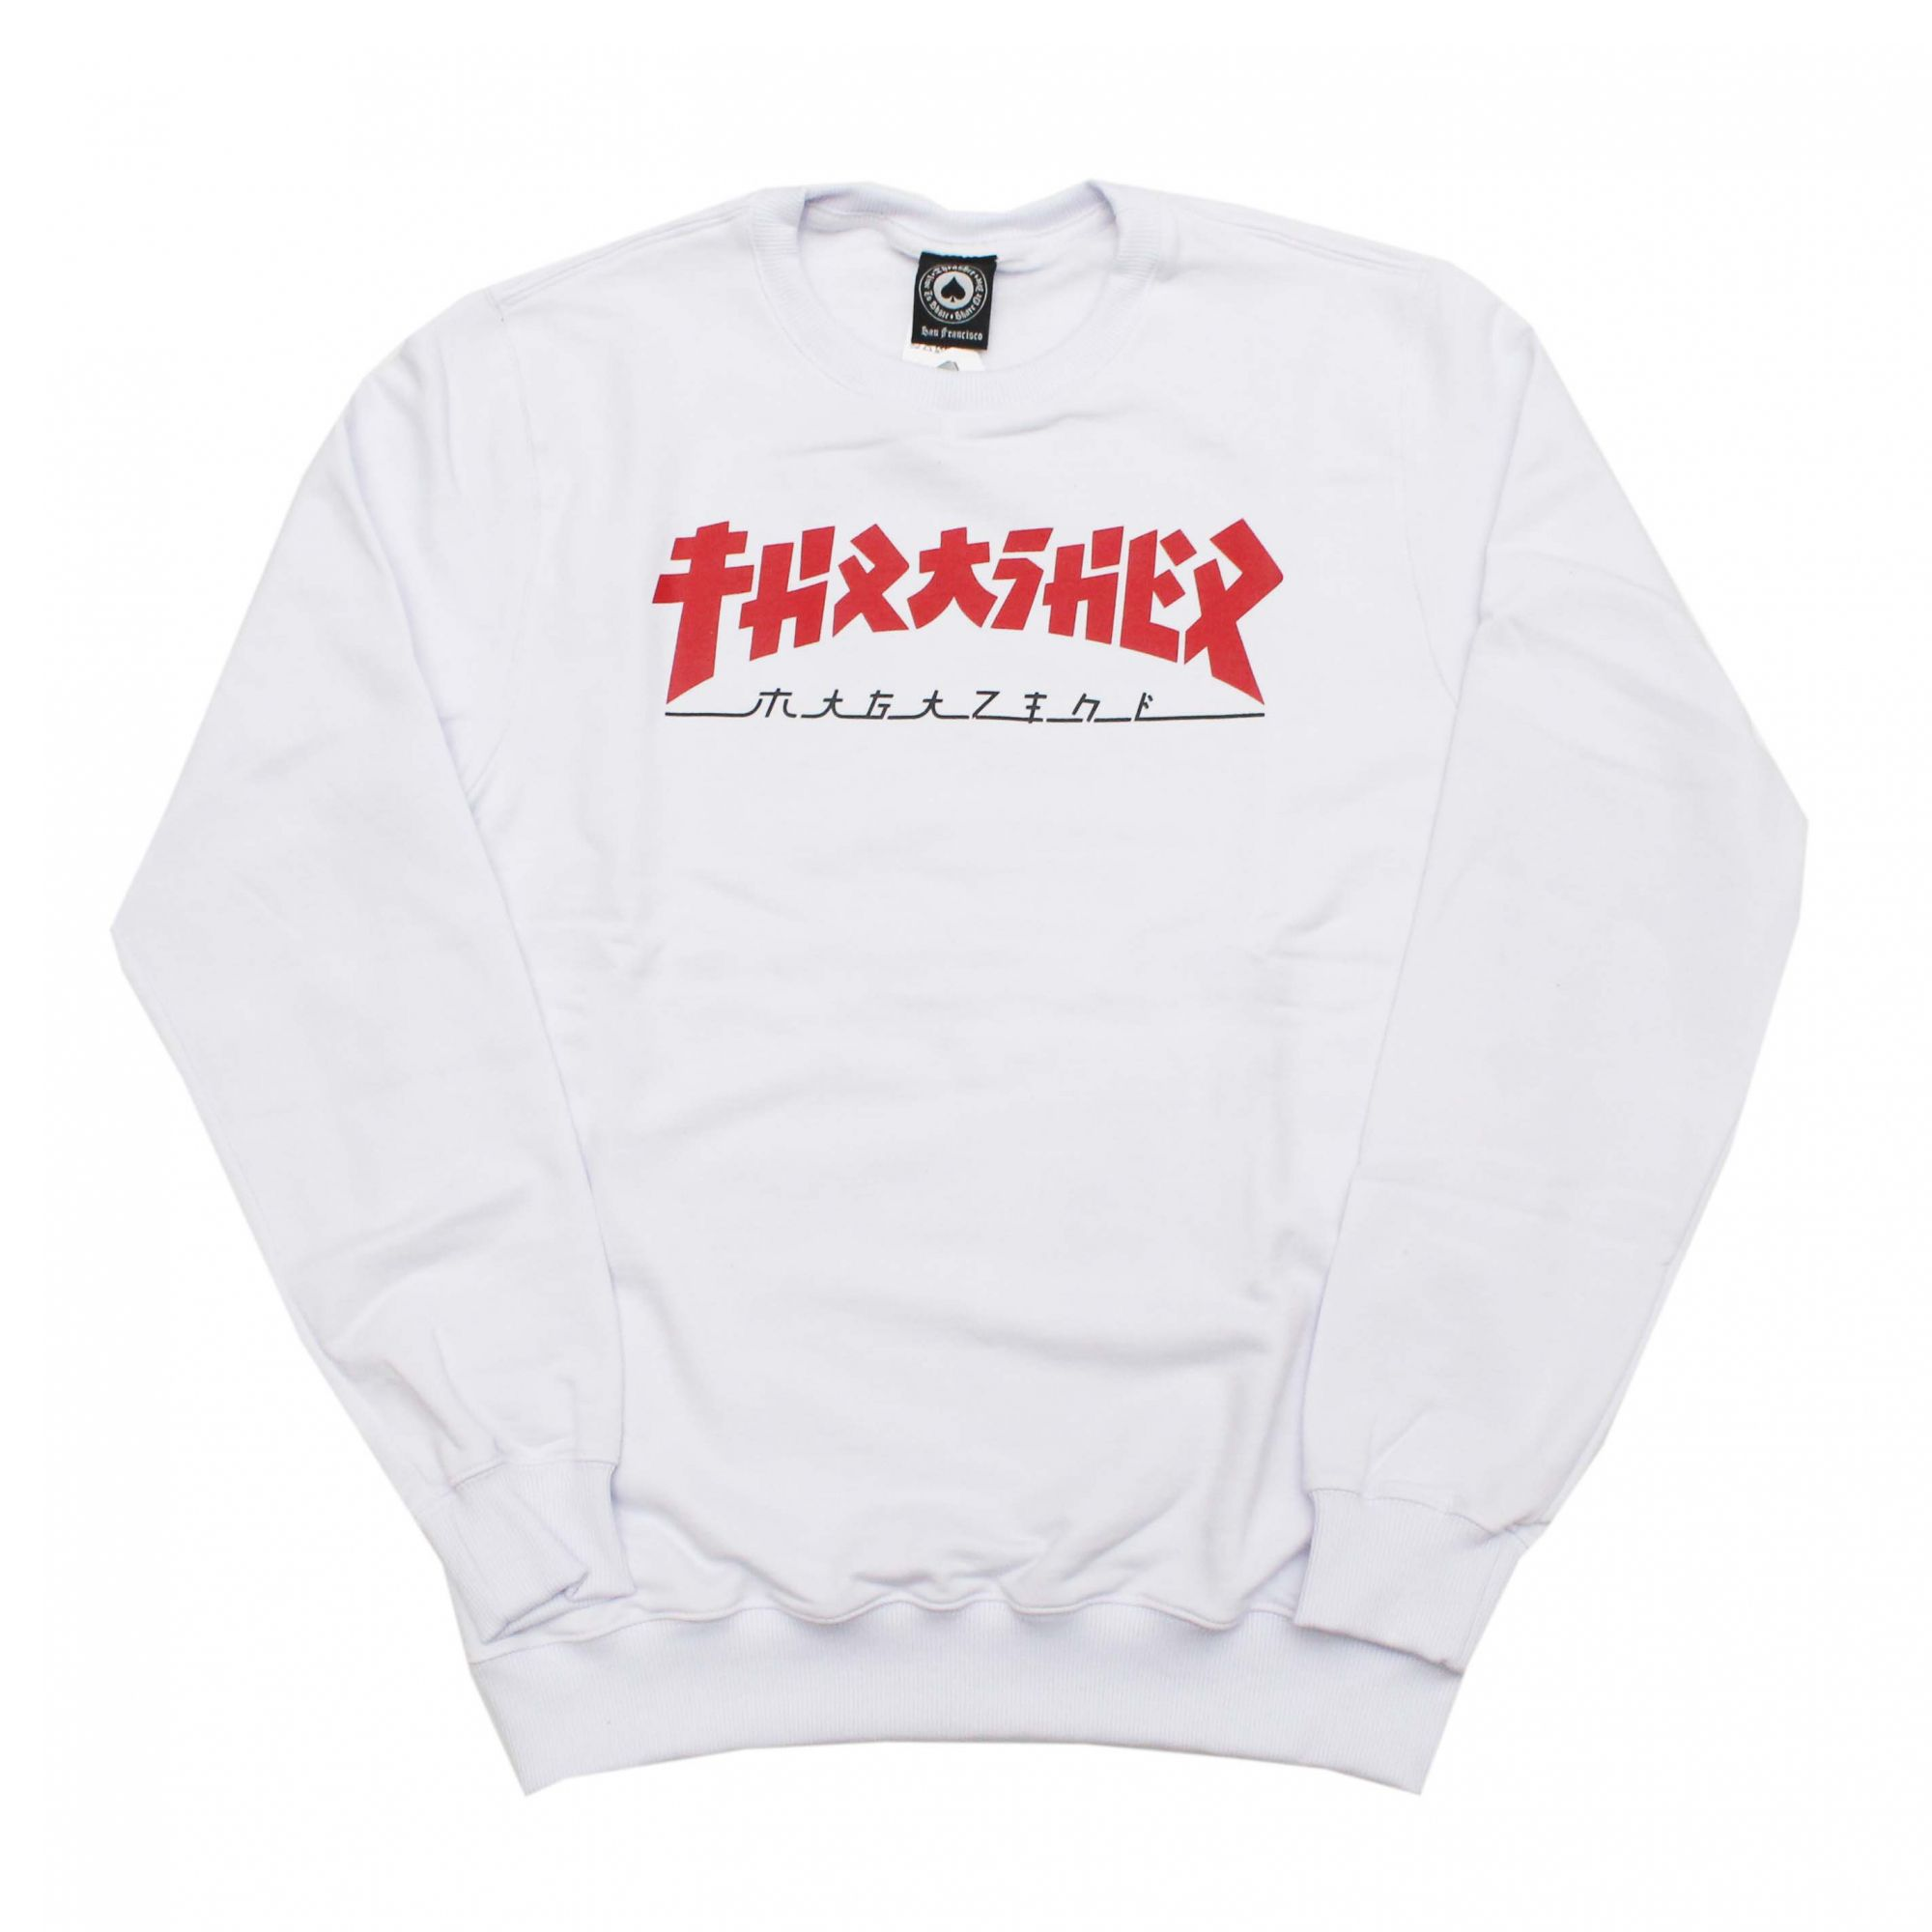 Moletom Thrasher Magazine Careca Godzilla Branco